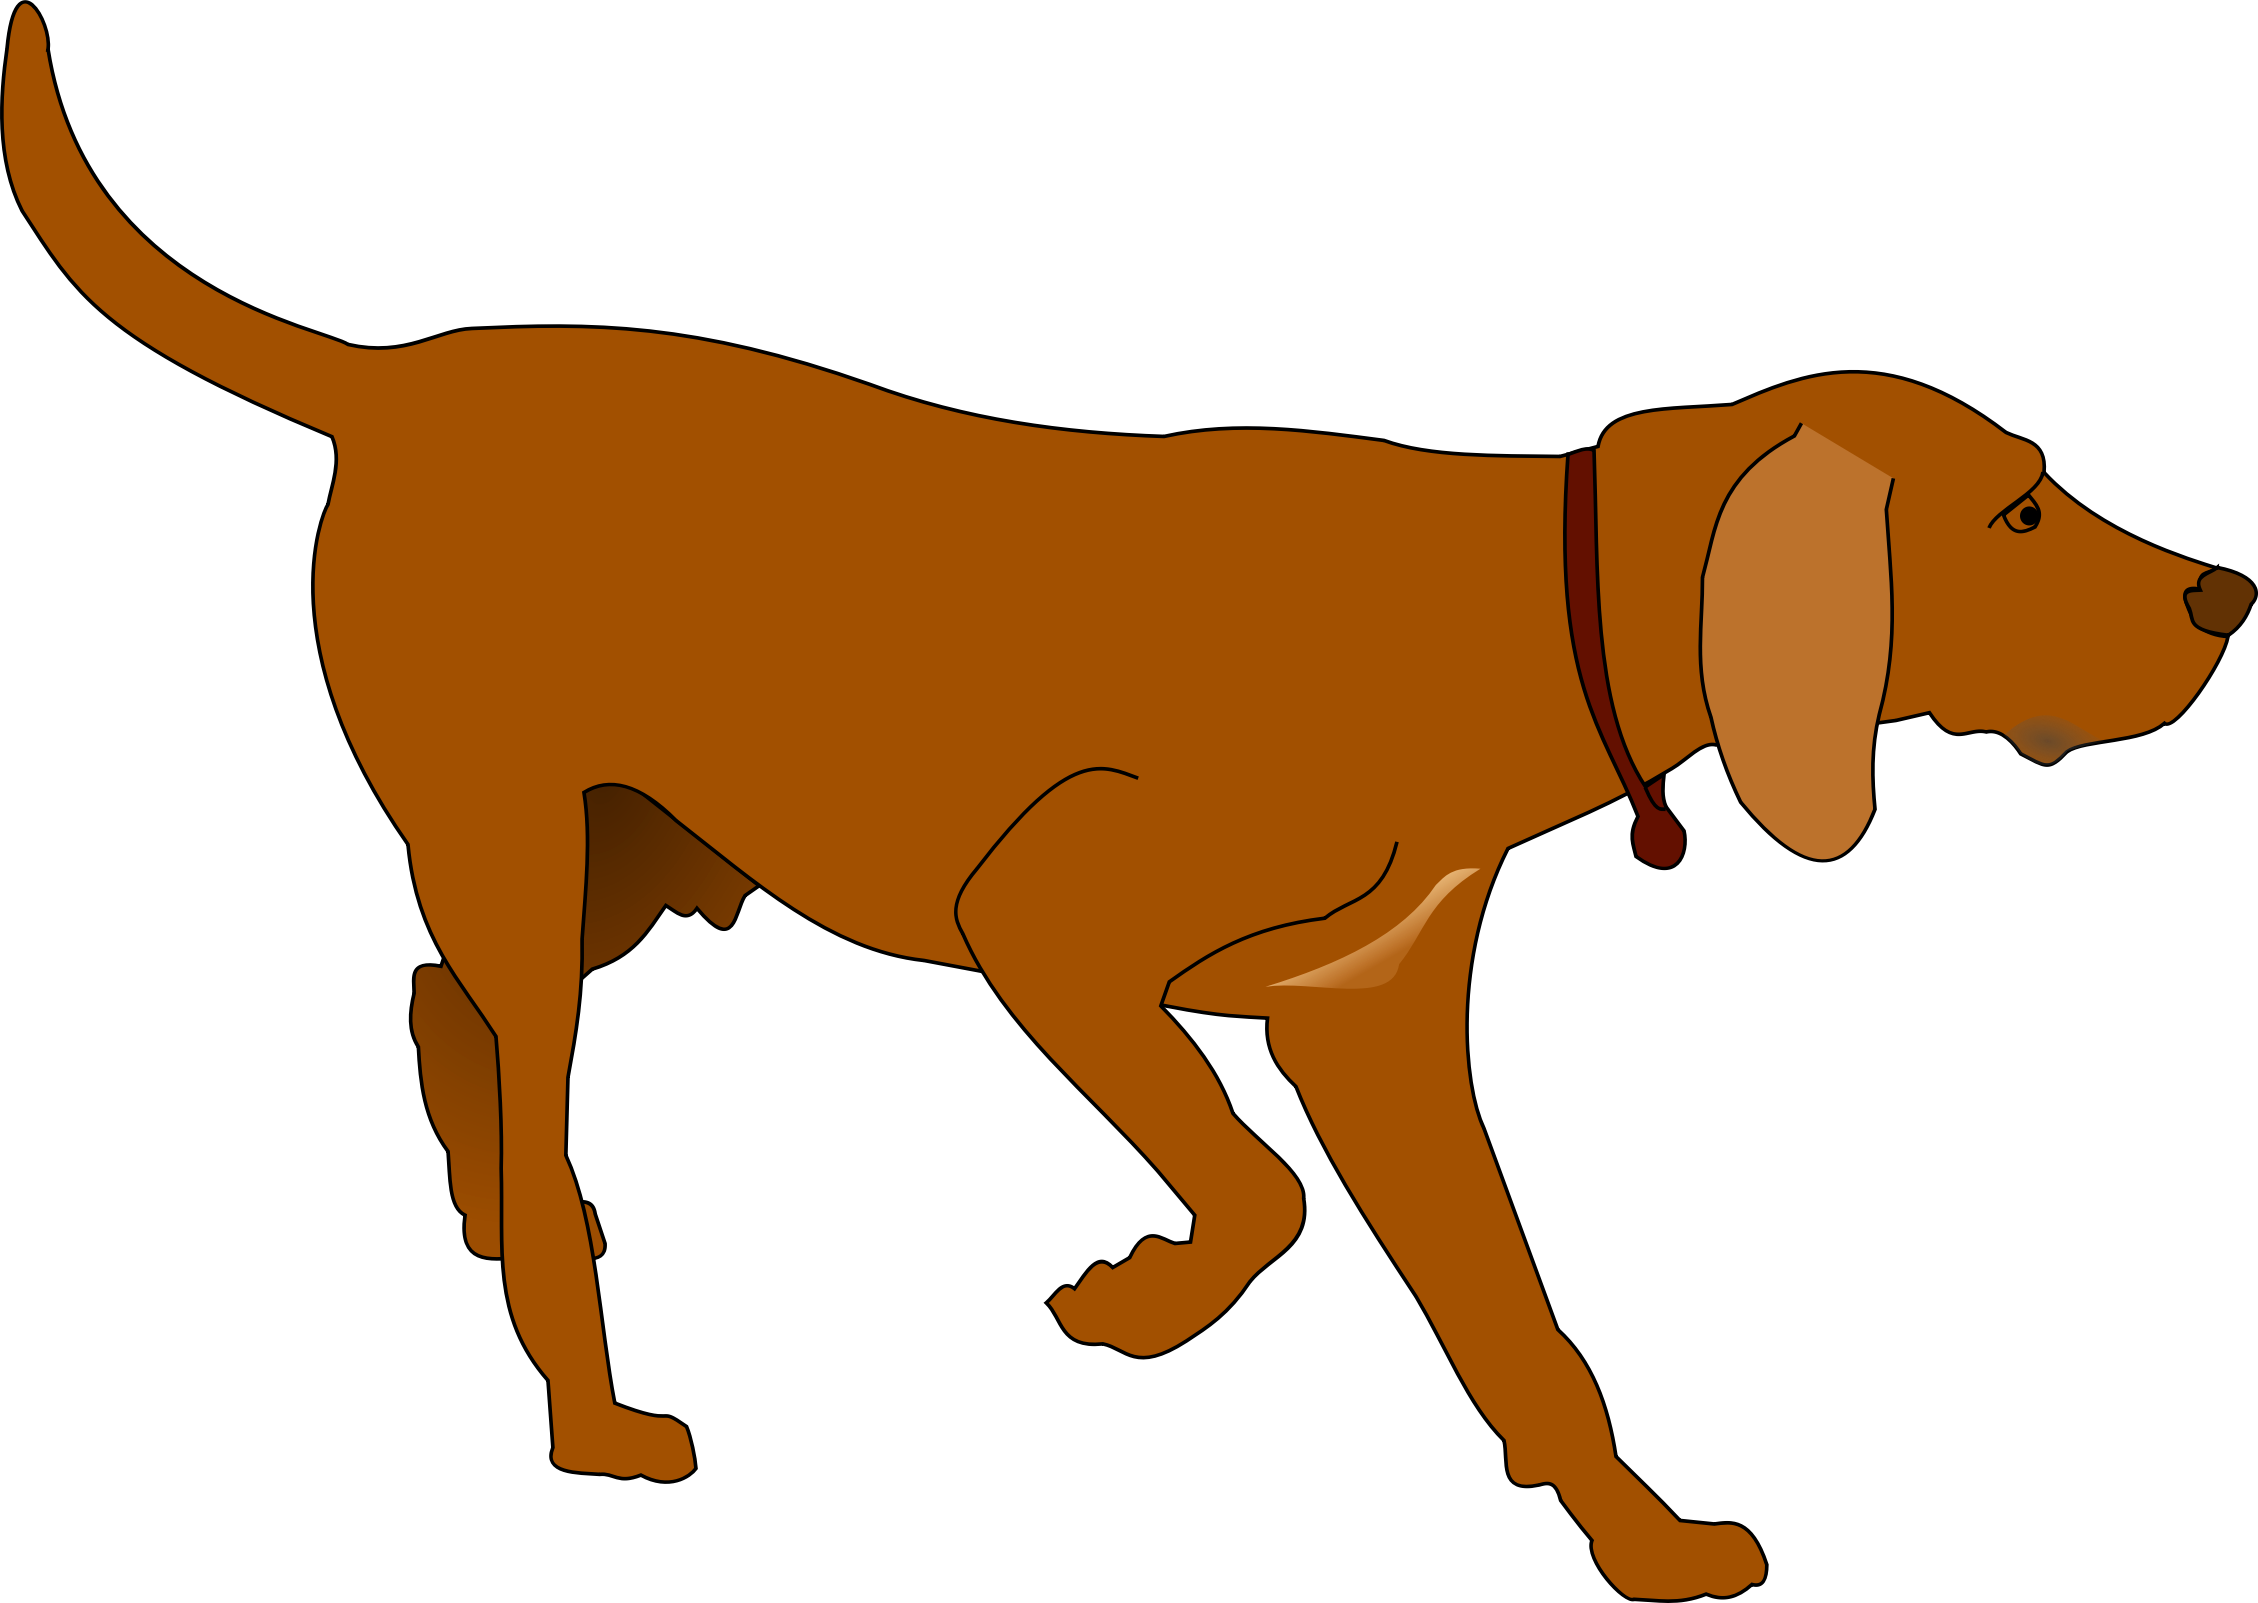 hunting dog vector clipart image free stock photo public domain rh goodfreephotos com dog vector free dog vector images